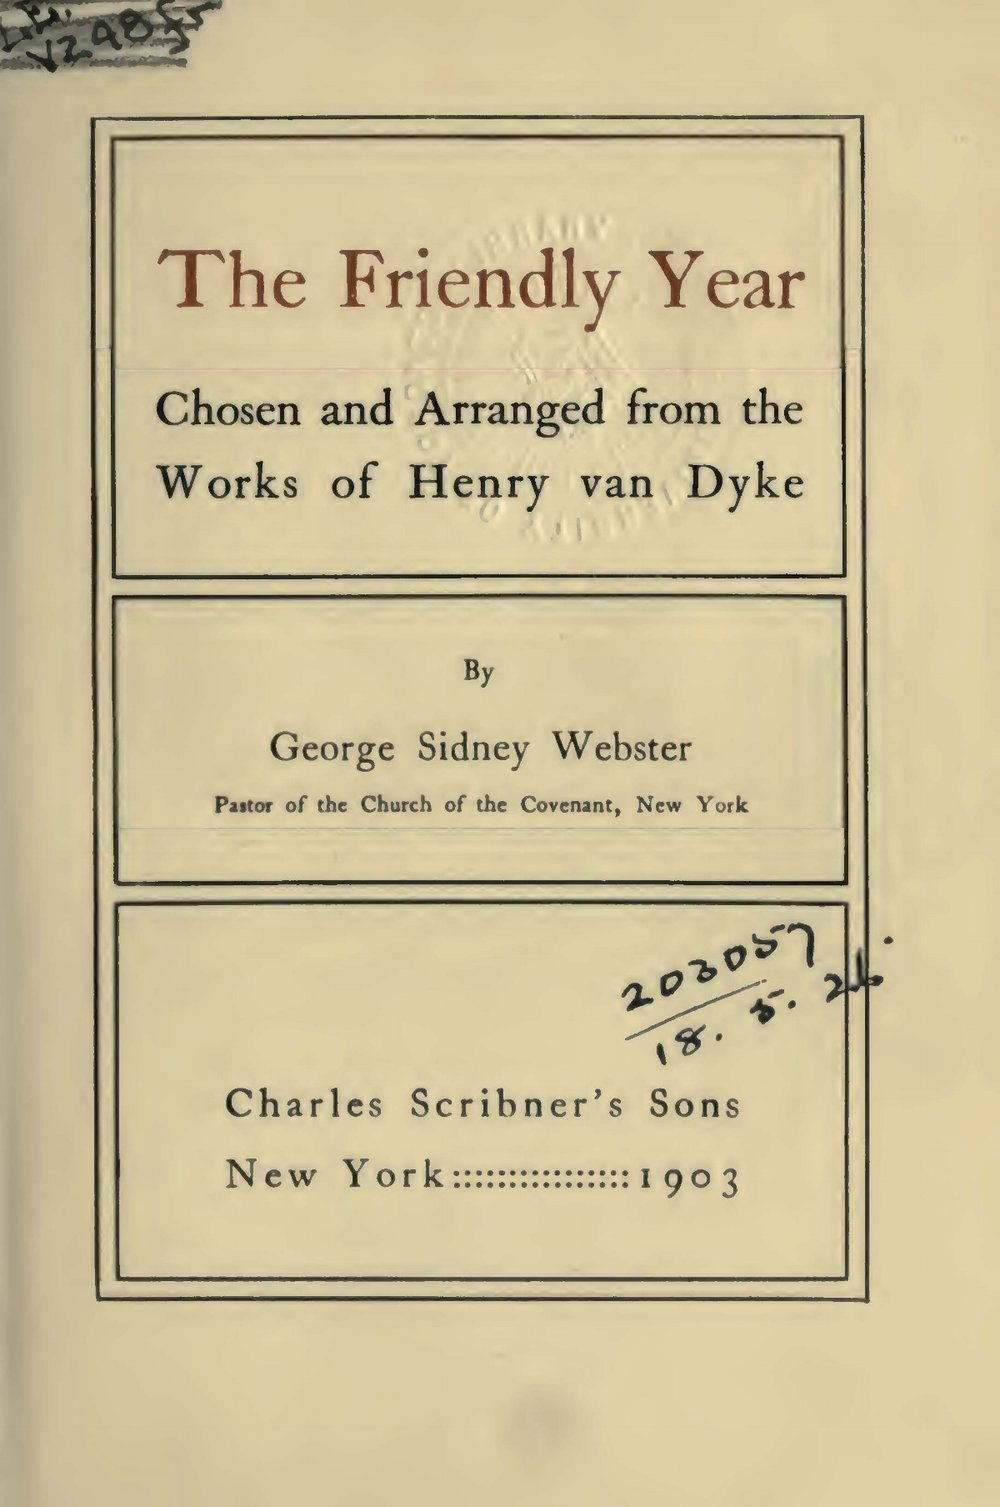 Van Dyke, Jr., Henry Jackson, The Friendly Year Title Page.jpg